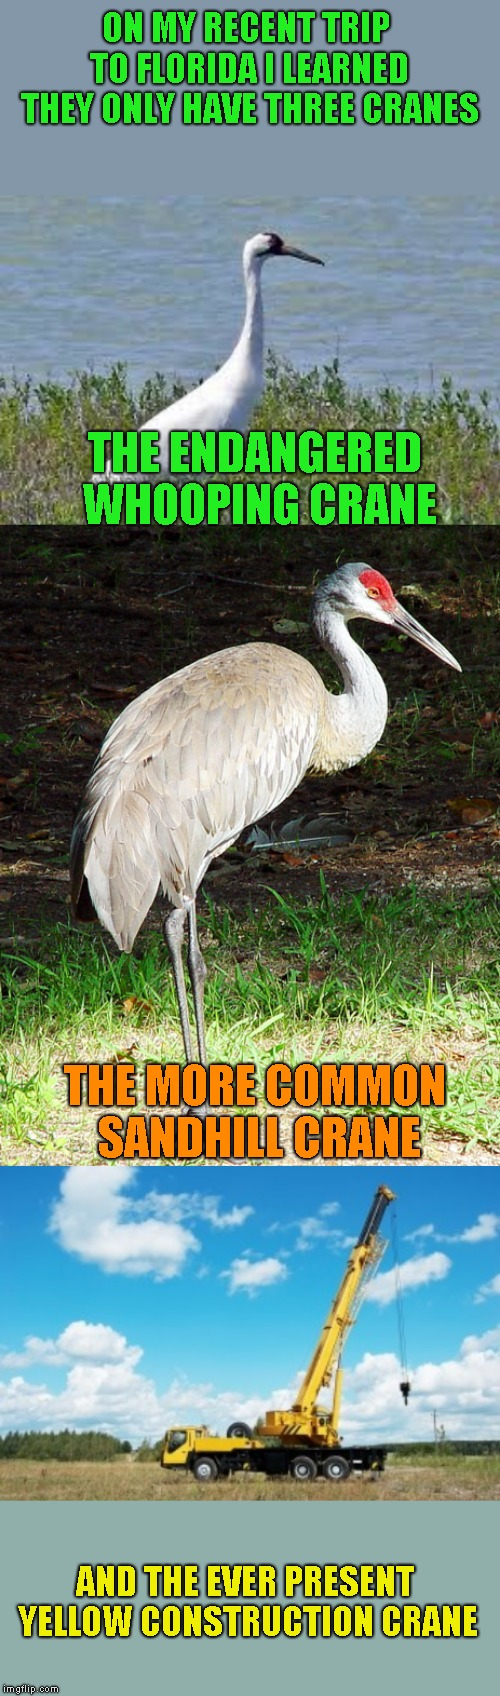 Not to be confused with Herons, Egrets and bulldozers |  ON MY RECENT TRIP TO FLORIDA I LEARNED THEY ONLY HAVE THREE CRANES; THE ENDANGERED WHOOPING CRANE; THE MORE COMMON SANDHILL CRANE; AND THE EVER PRESENT YELLOW CONSTRUCTION CRANE | image tagged in birds,stupid humor | made w/ Imgflip meme maker